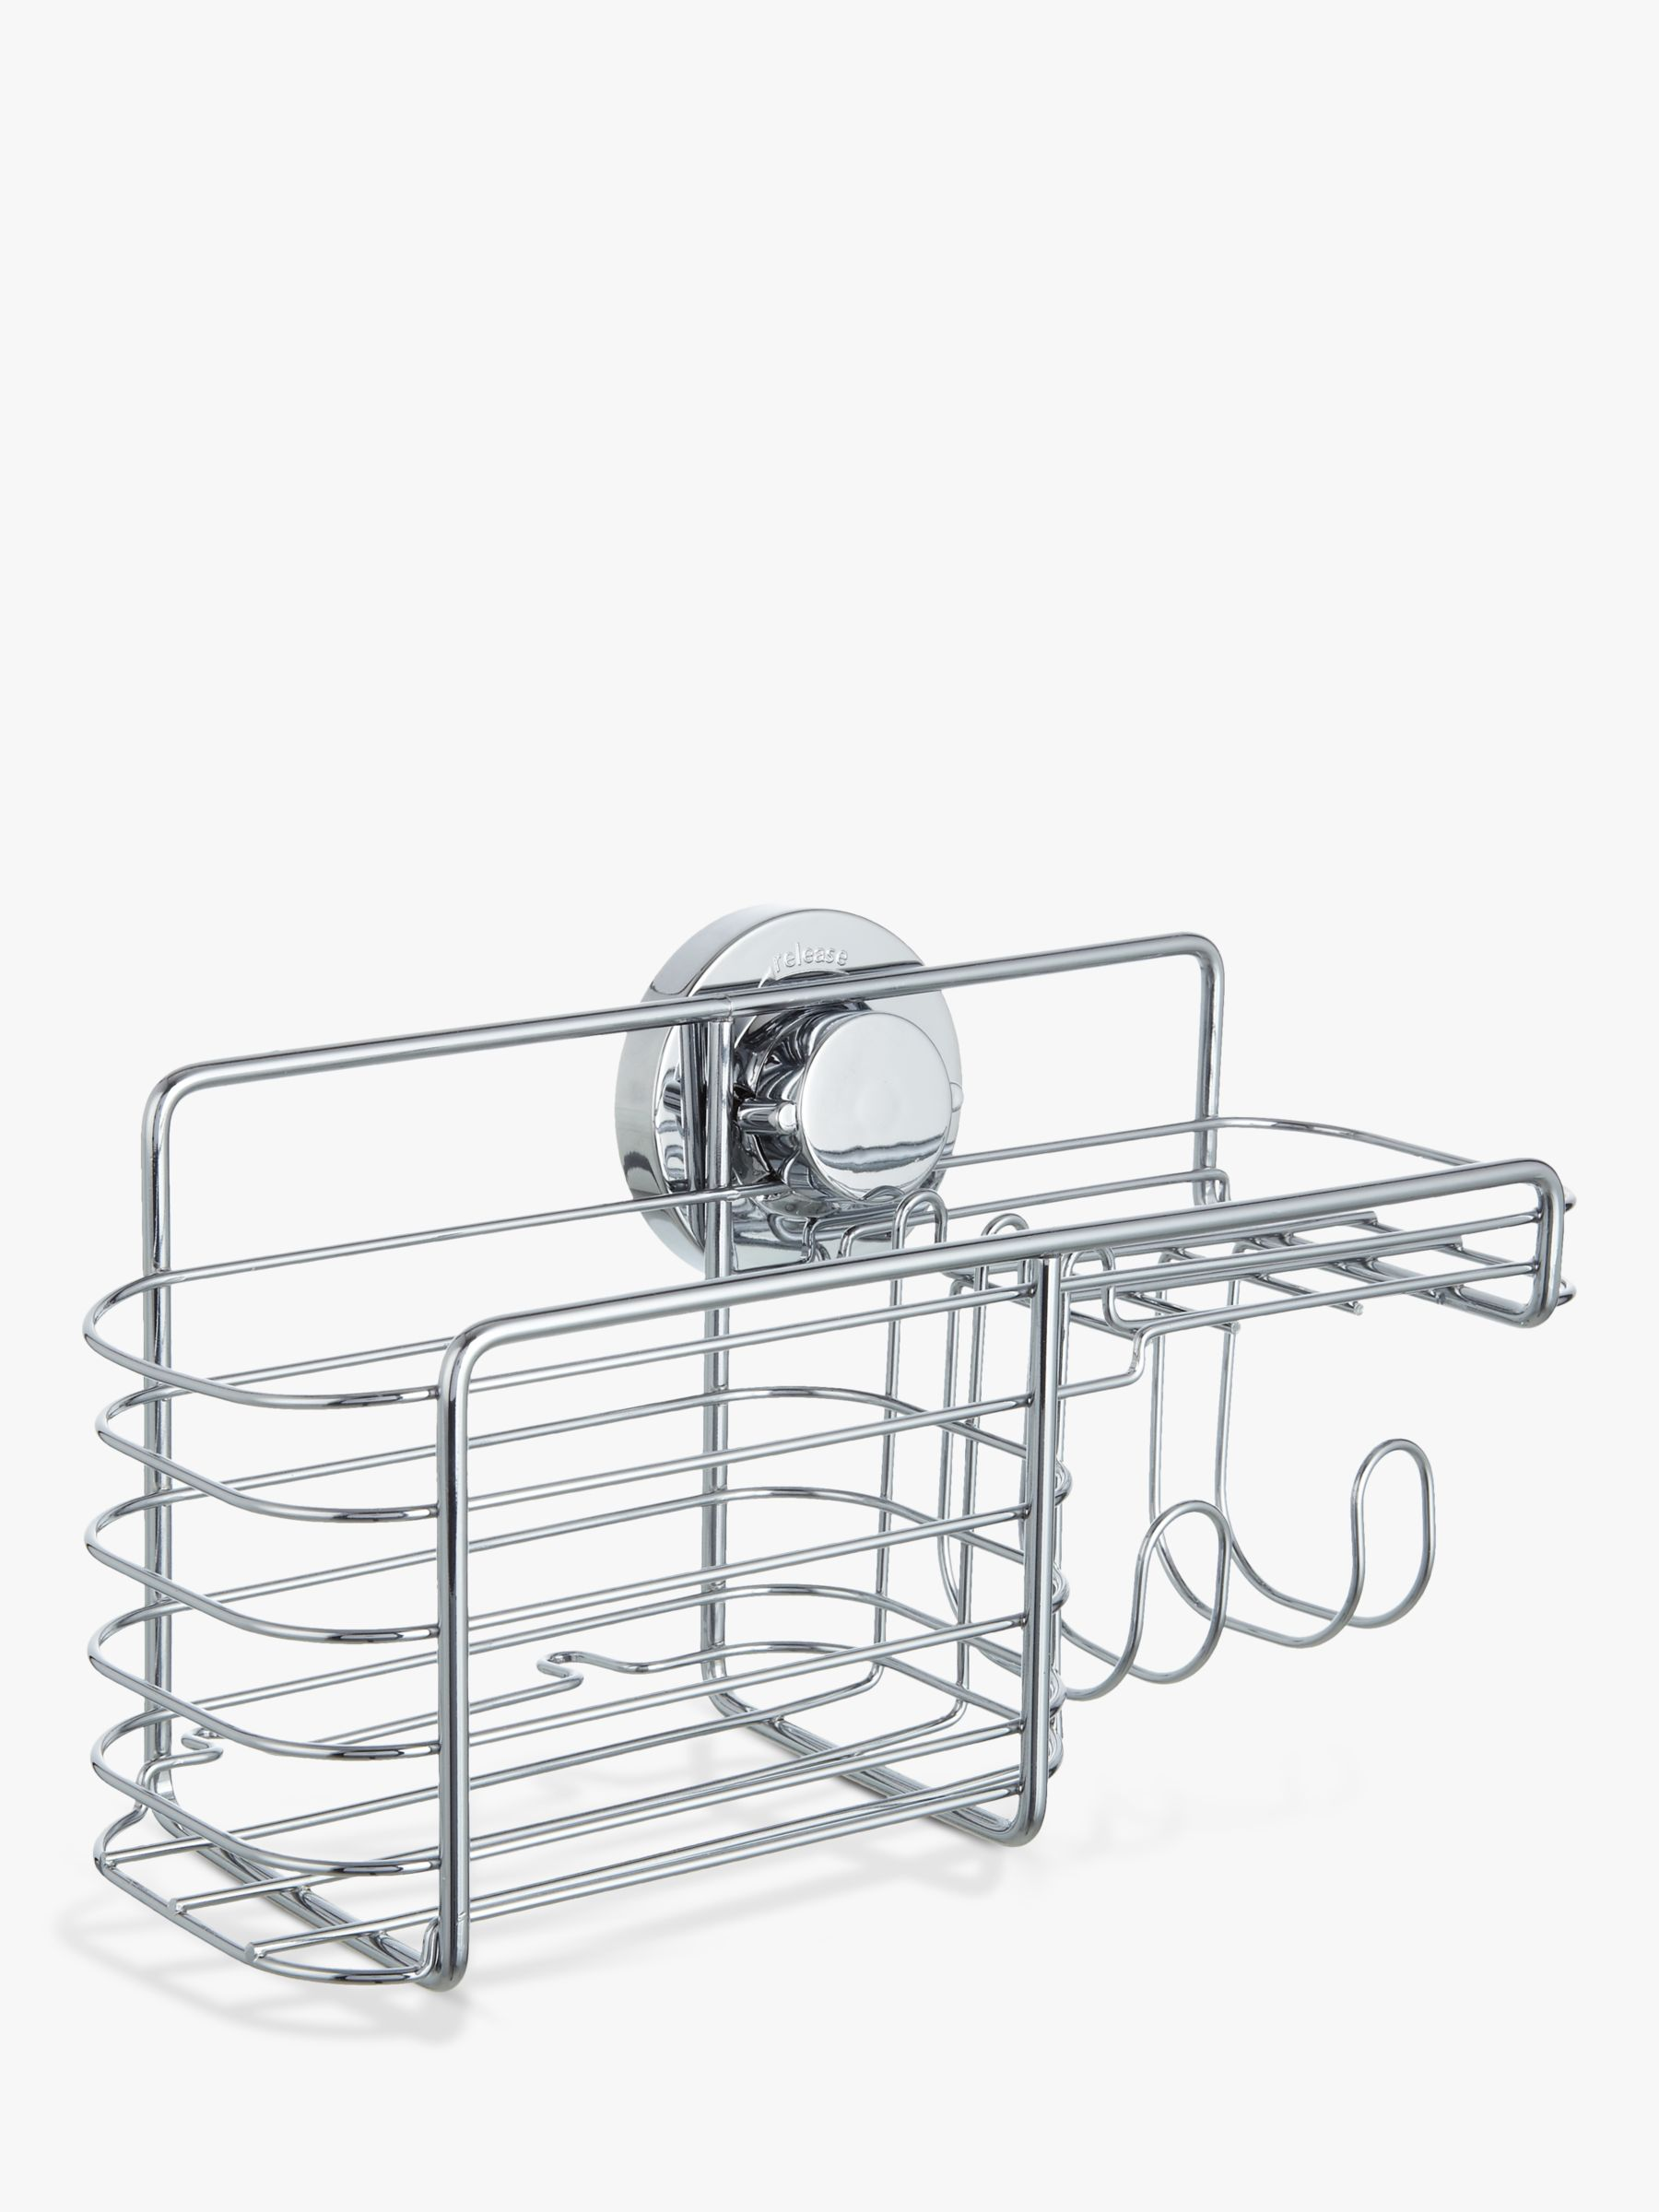 Bliss Bliss Lock N Roll Combination Suction Shower Basket